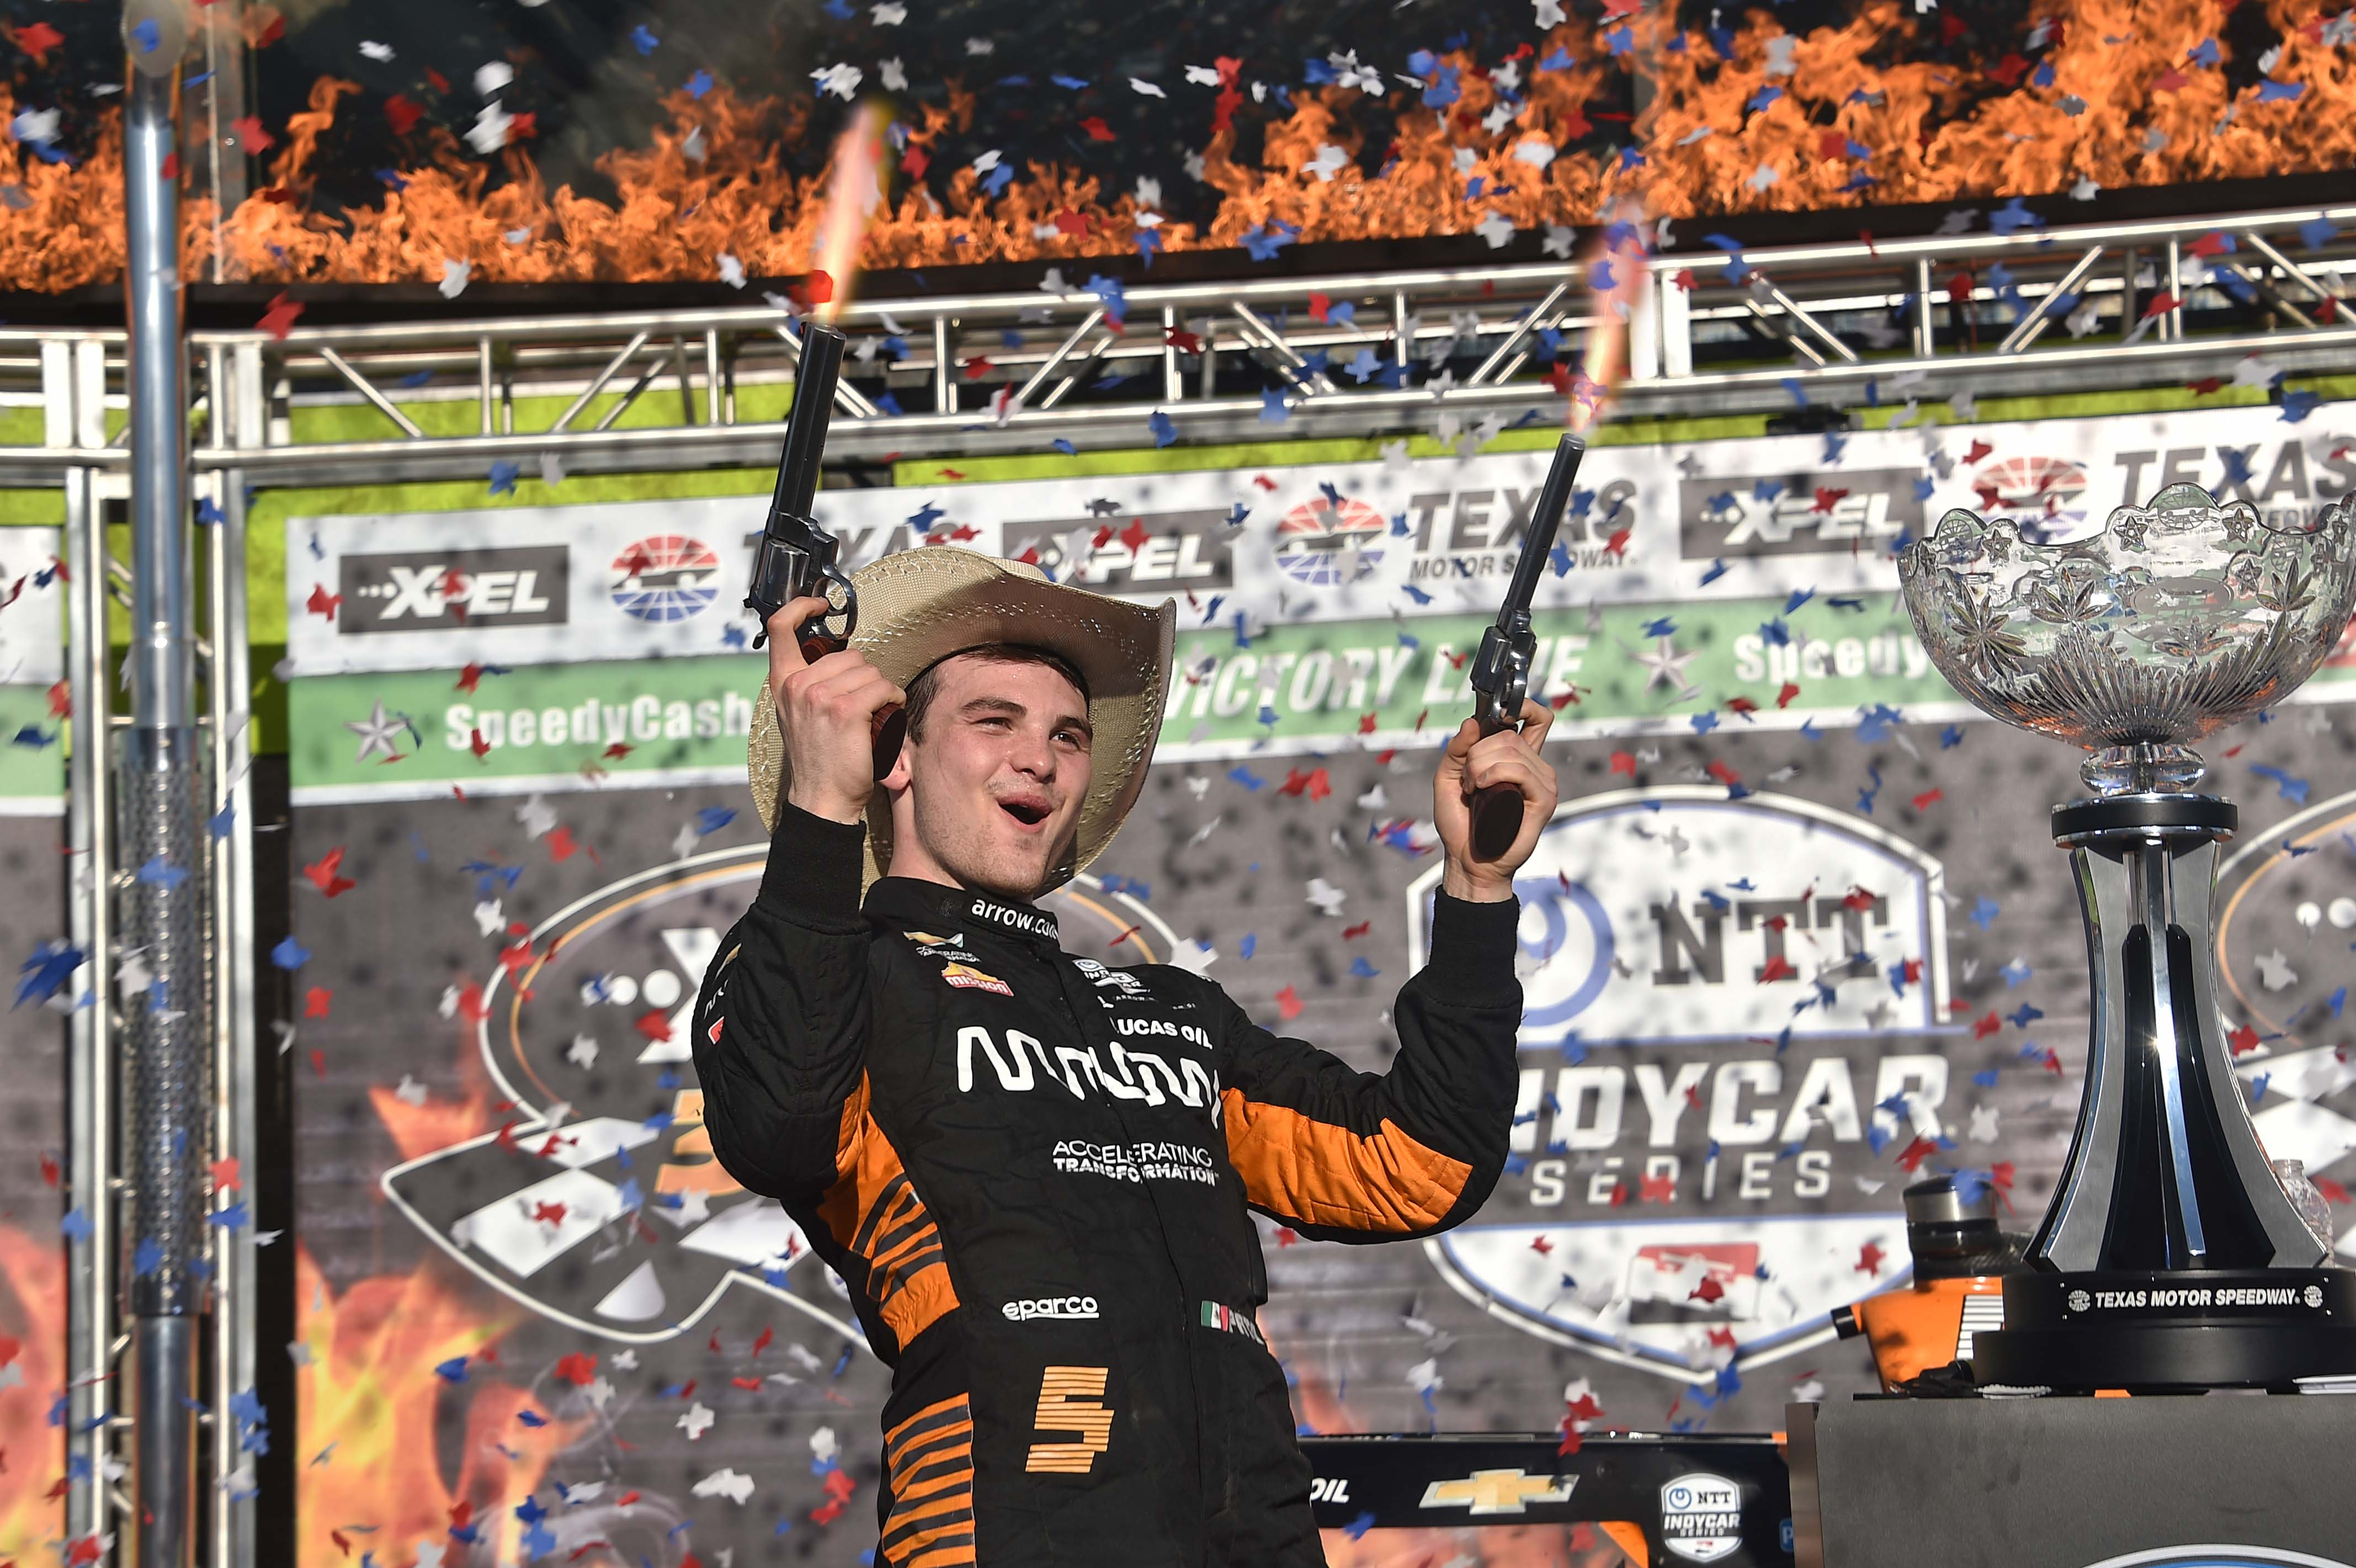 Pato O'Ward in victory lane at Texas Motor Speedway - Indycar